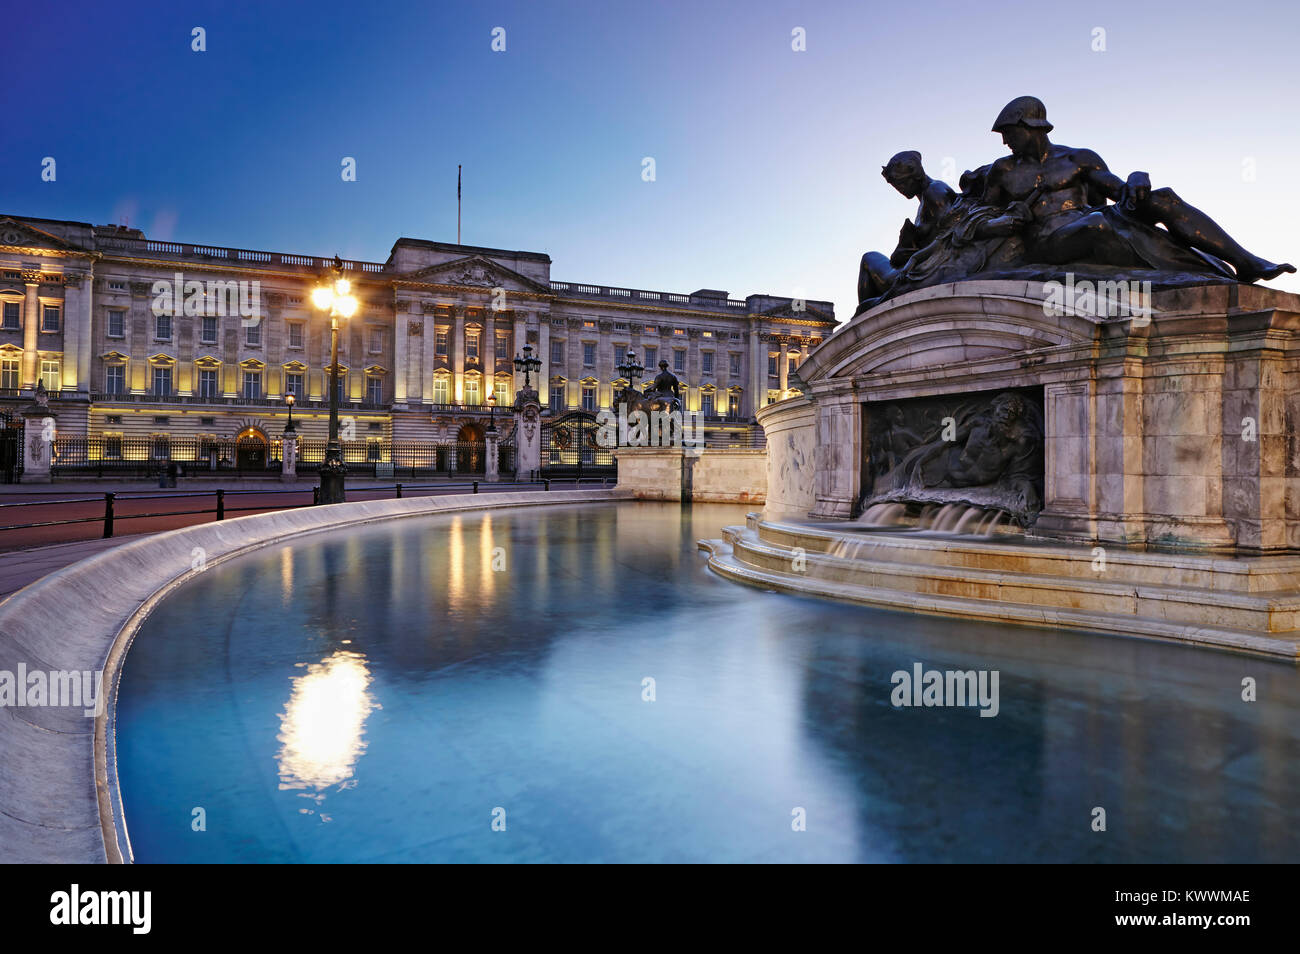 Queen Victoria Memorial, Buckingham Palace, London, England Stockbild